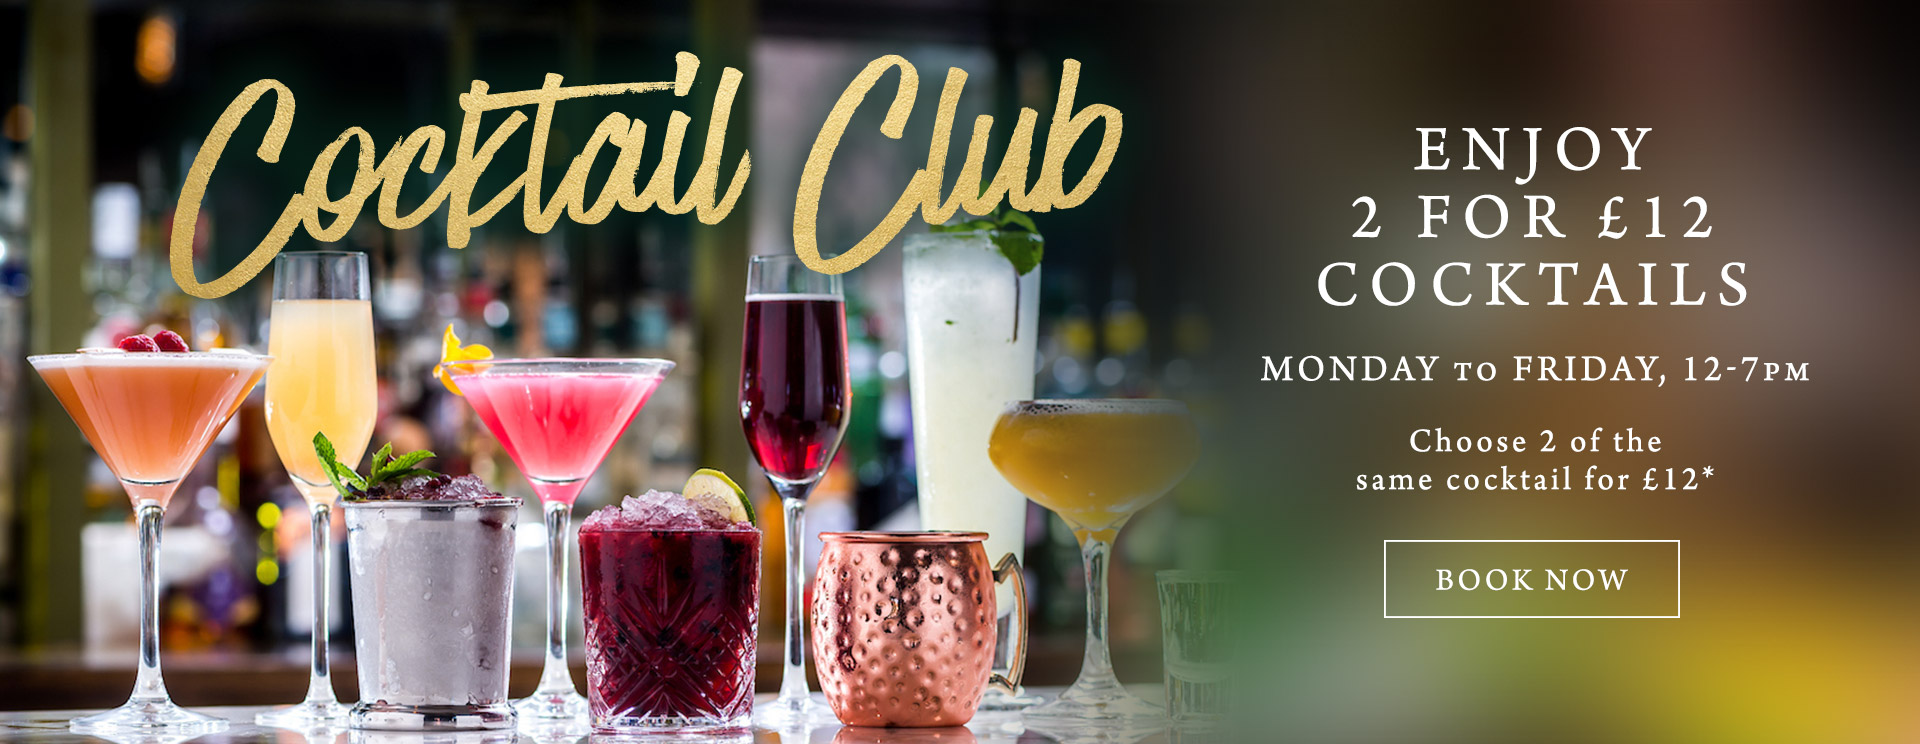 2 for £12 cocktails at The Rose & Crown